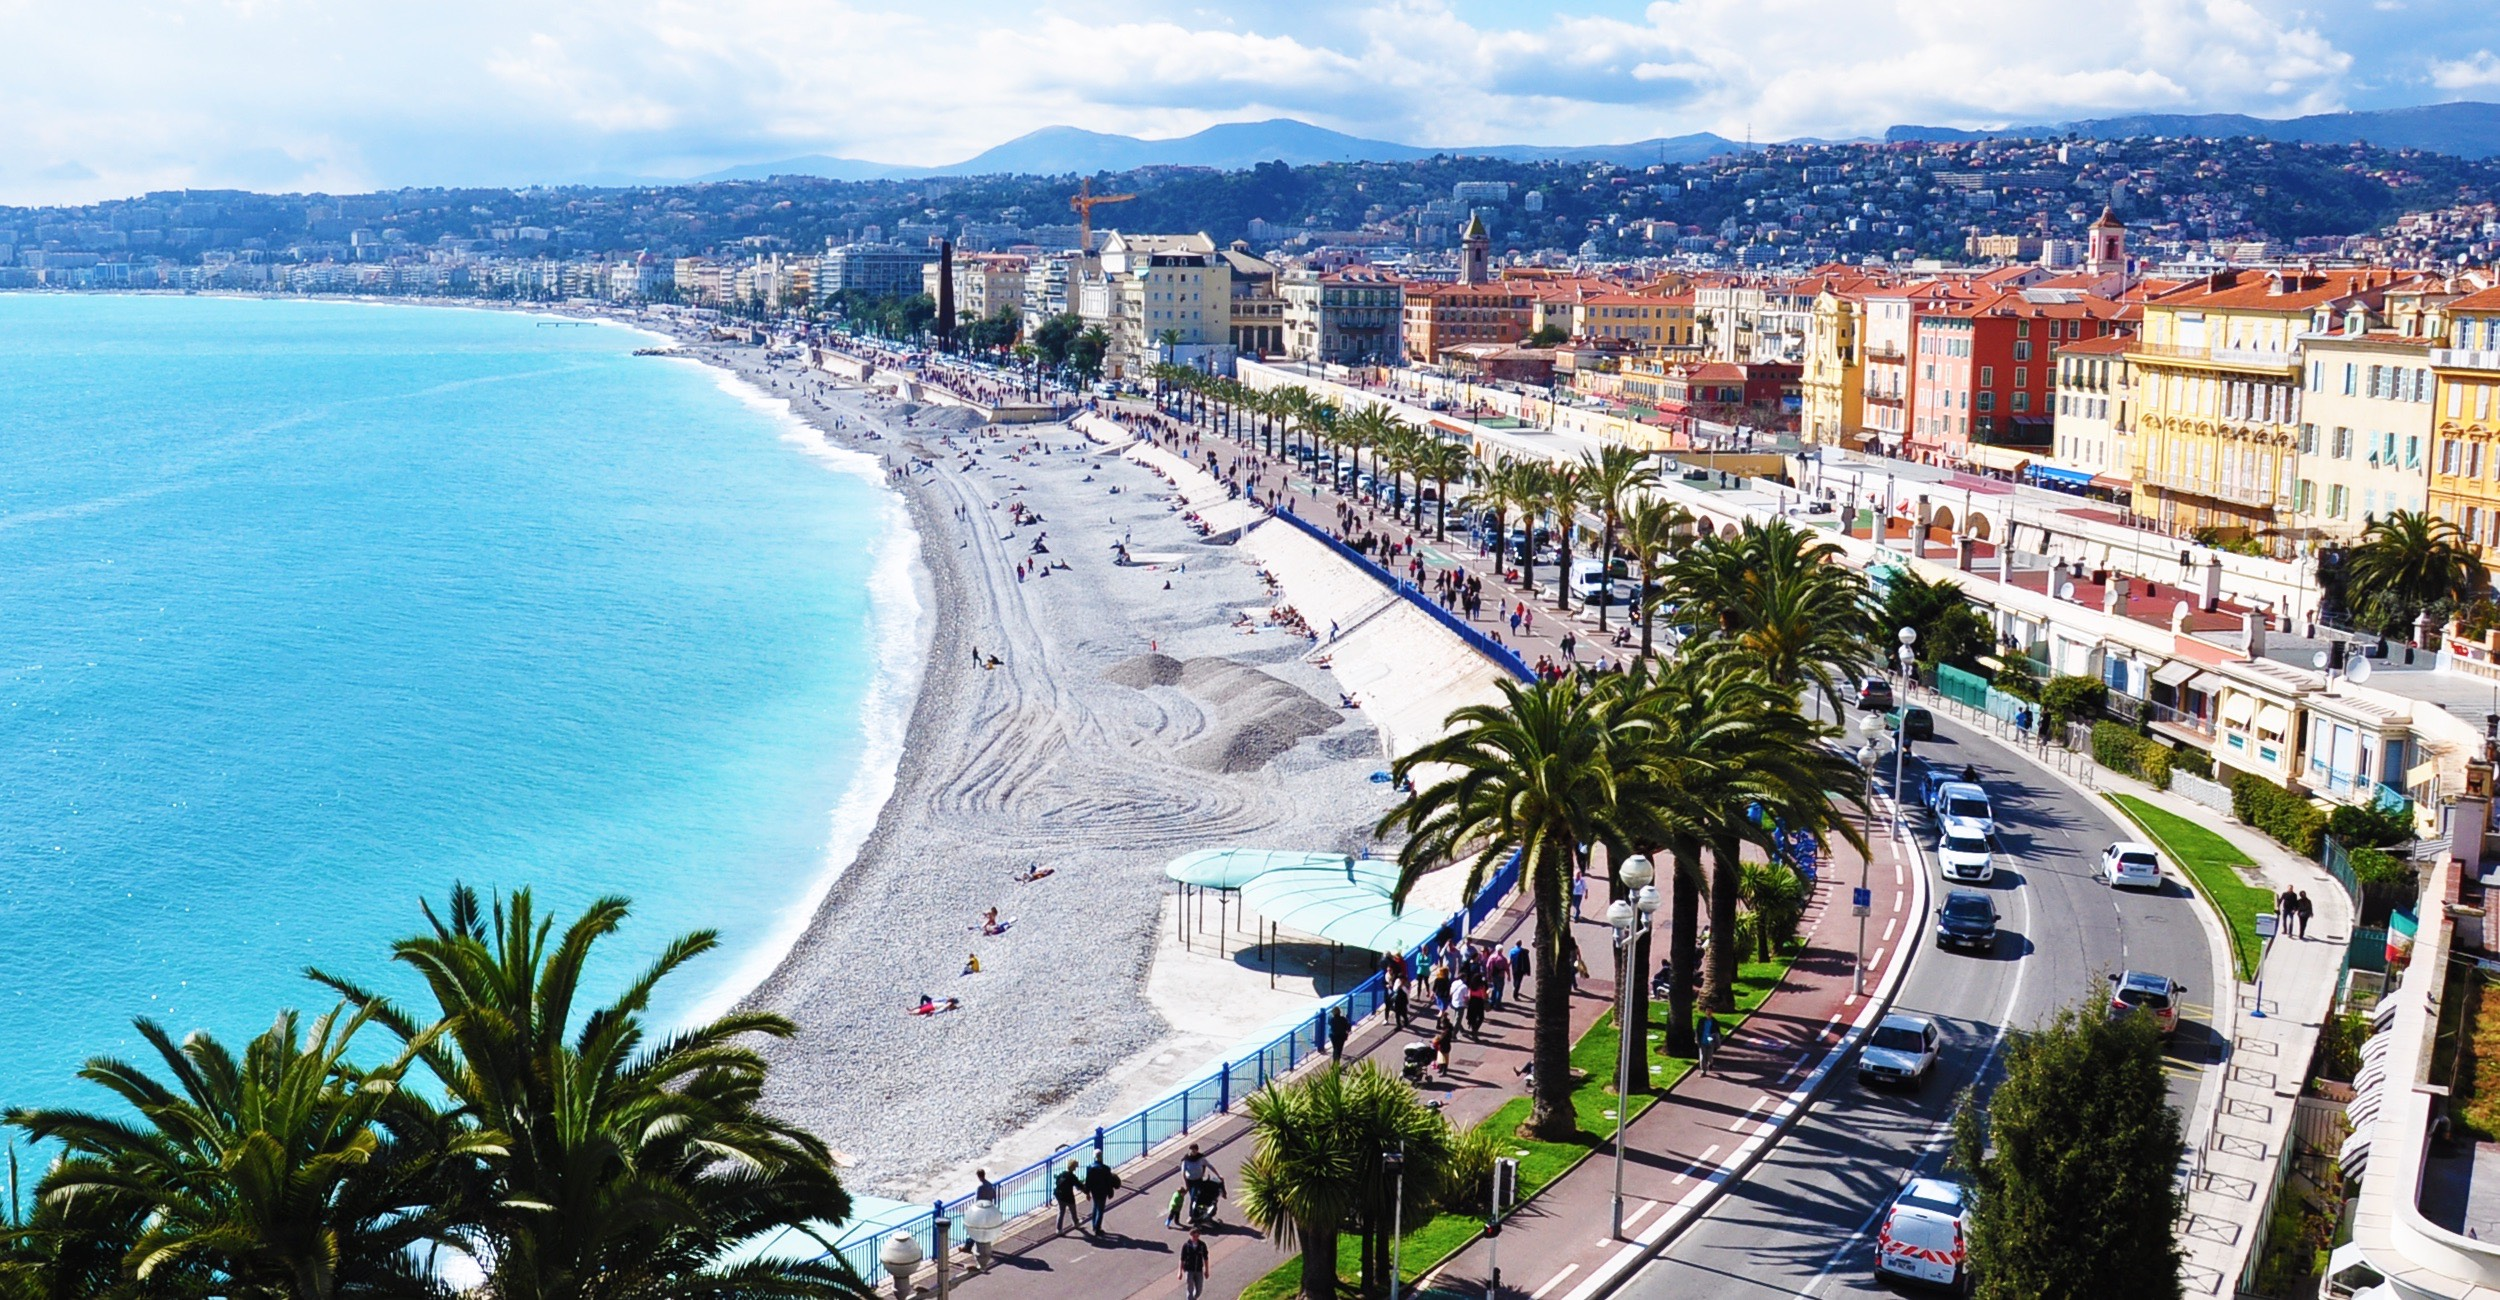 Half-Day Sightseeing Trip To Nice